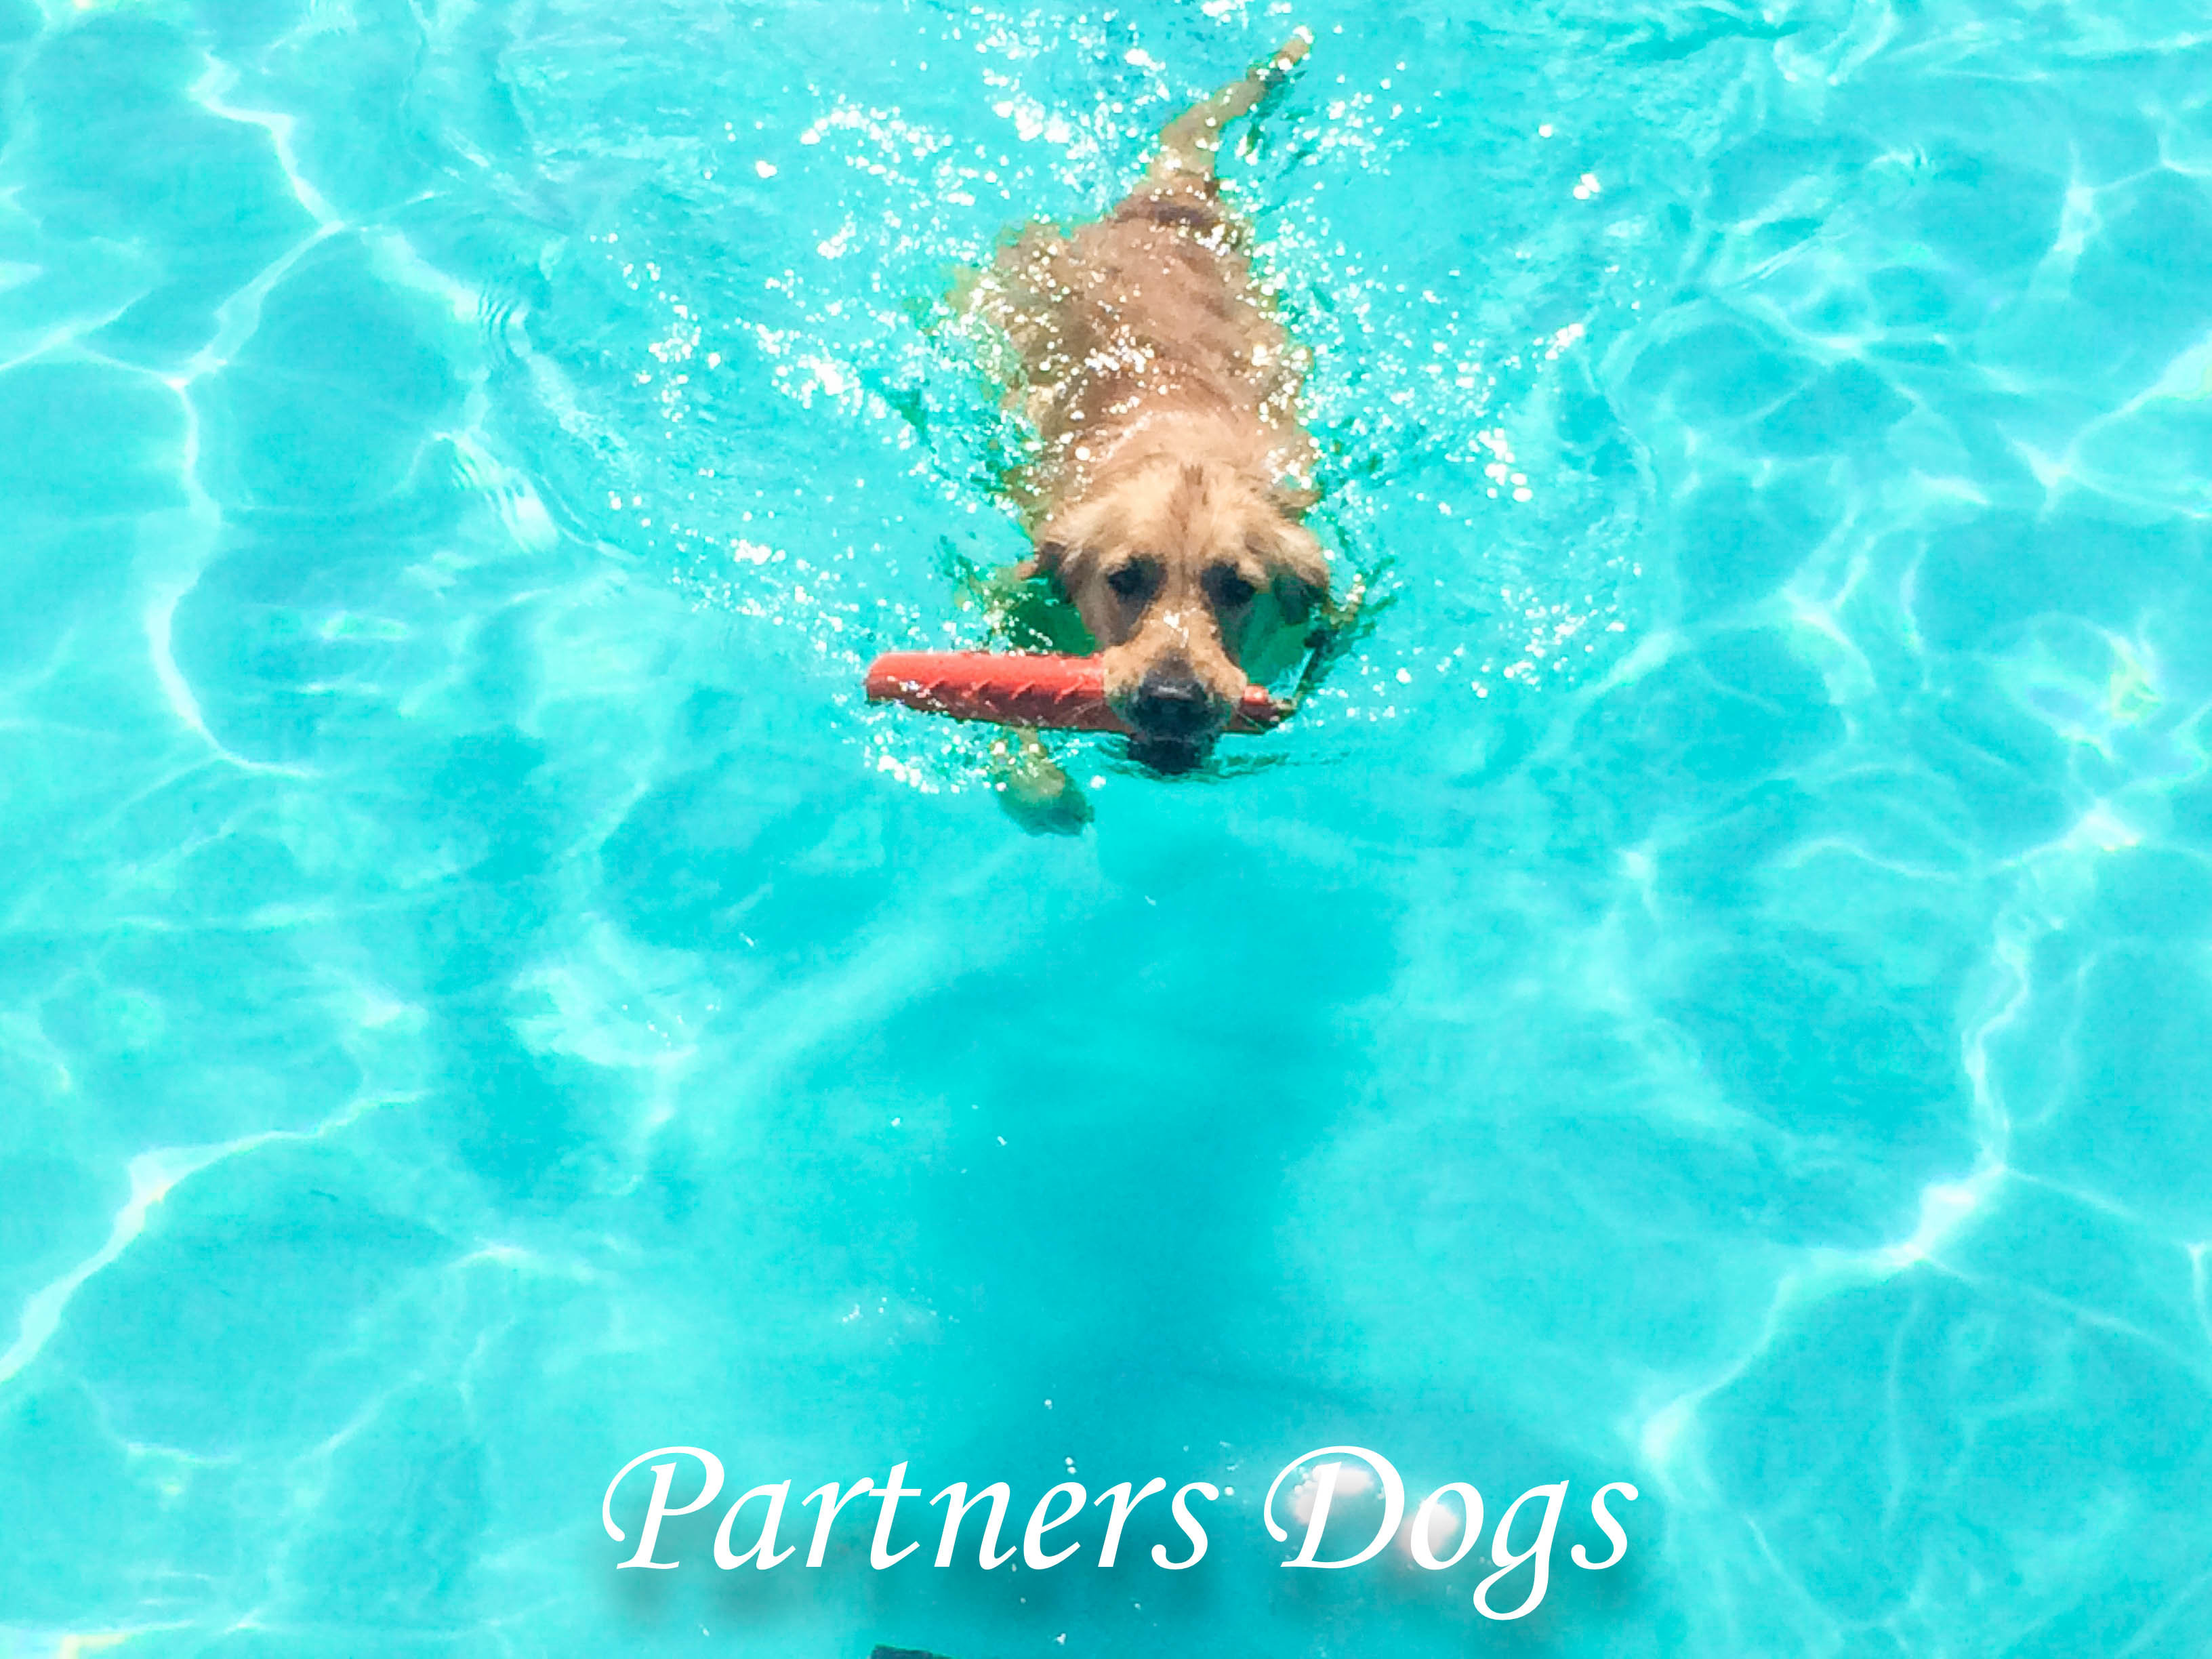 Partners dogs